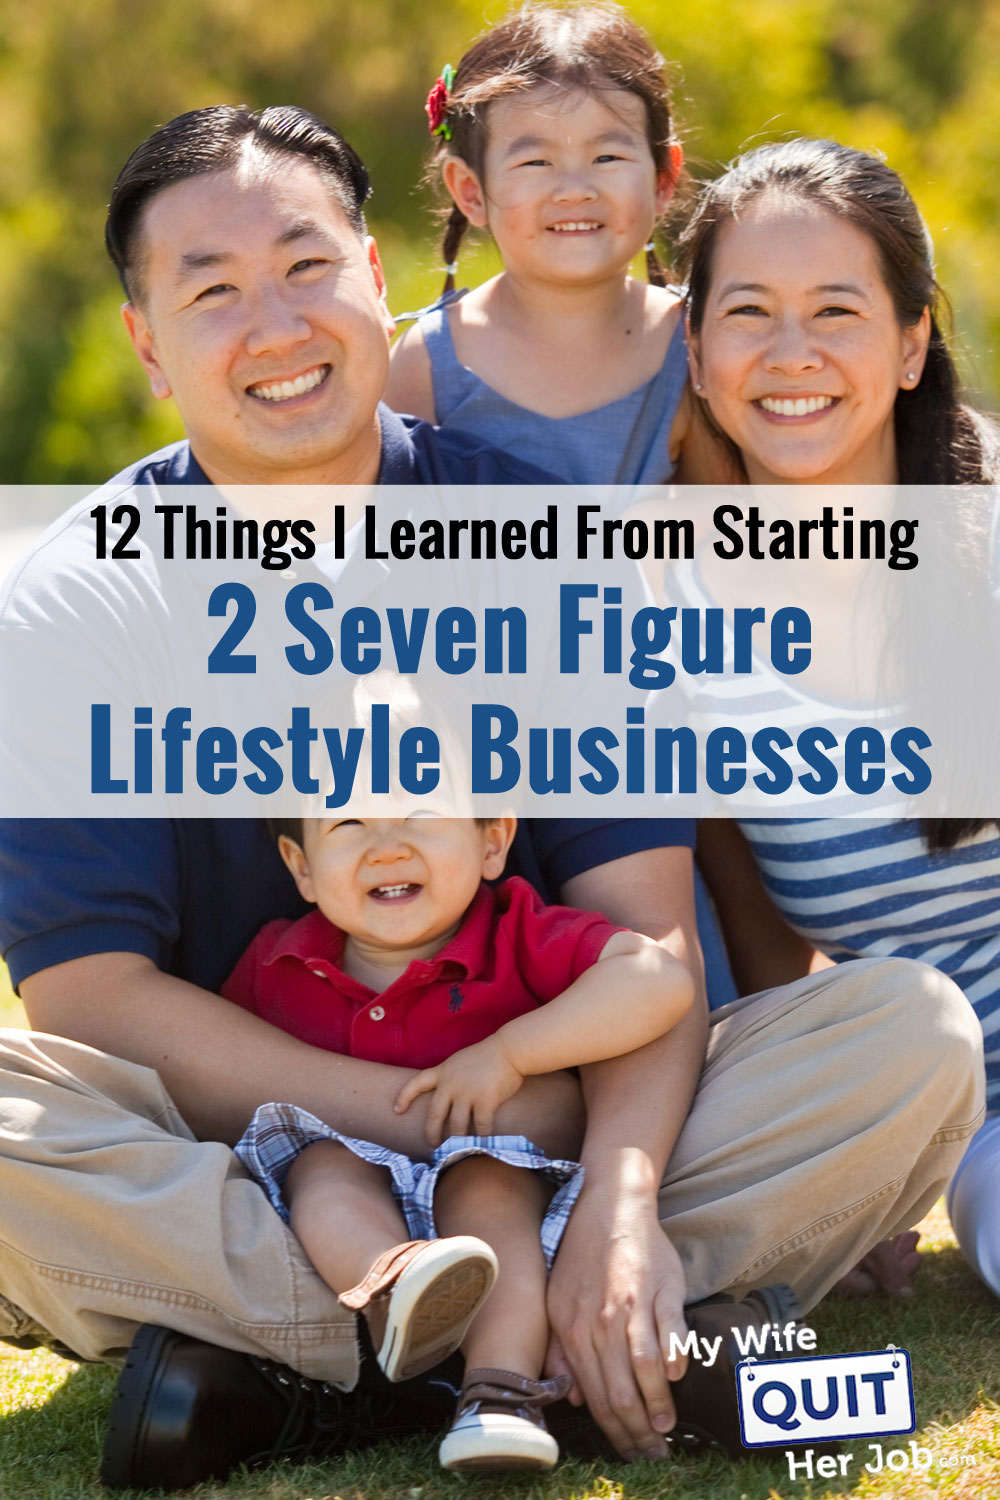 12 things i learned from starting two 7-figure lifestyle businesses